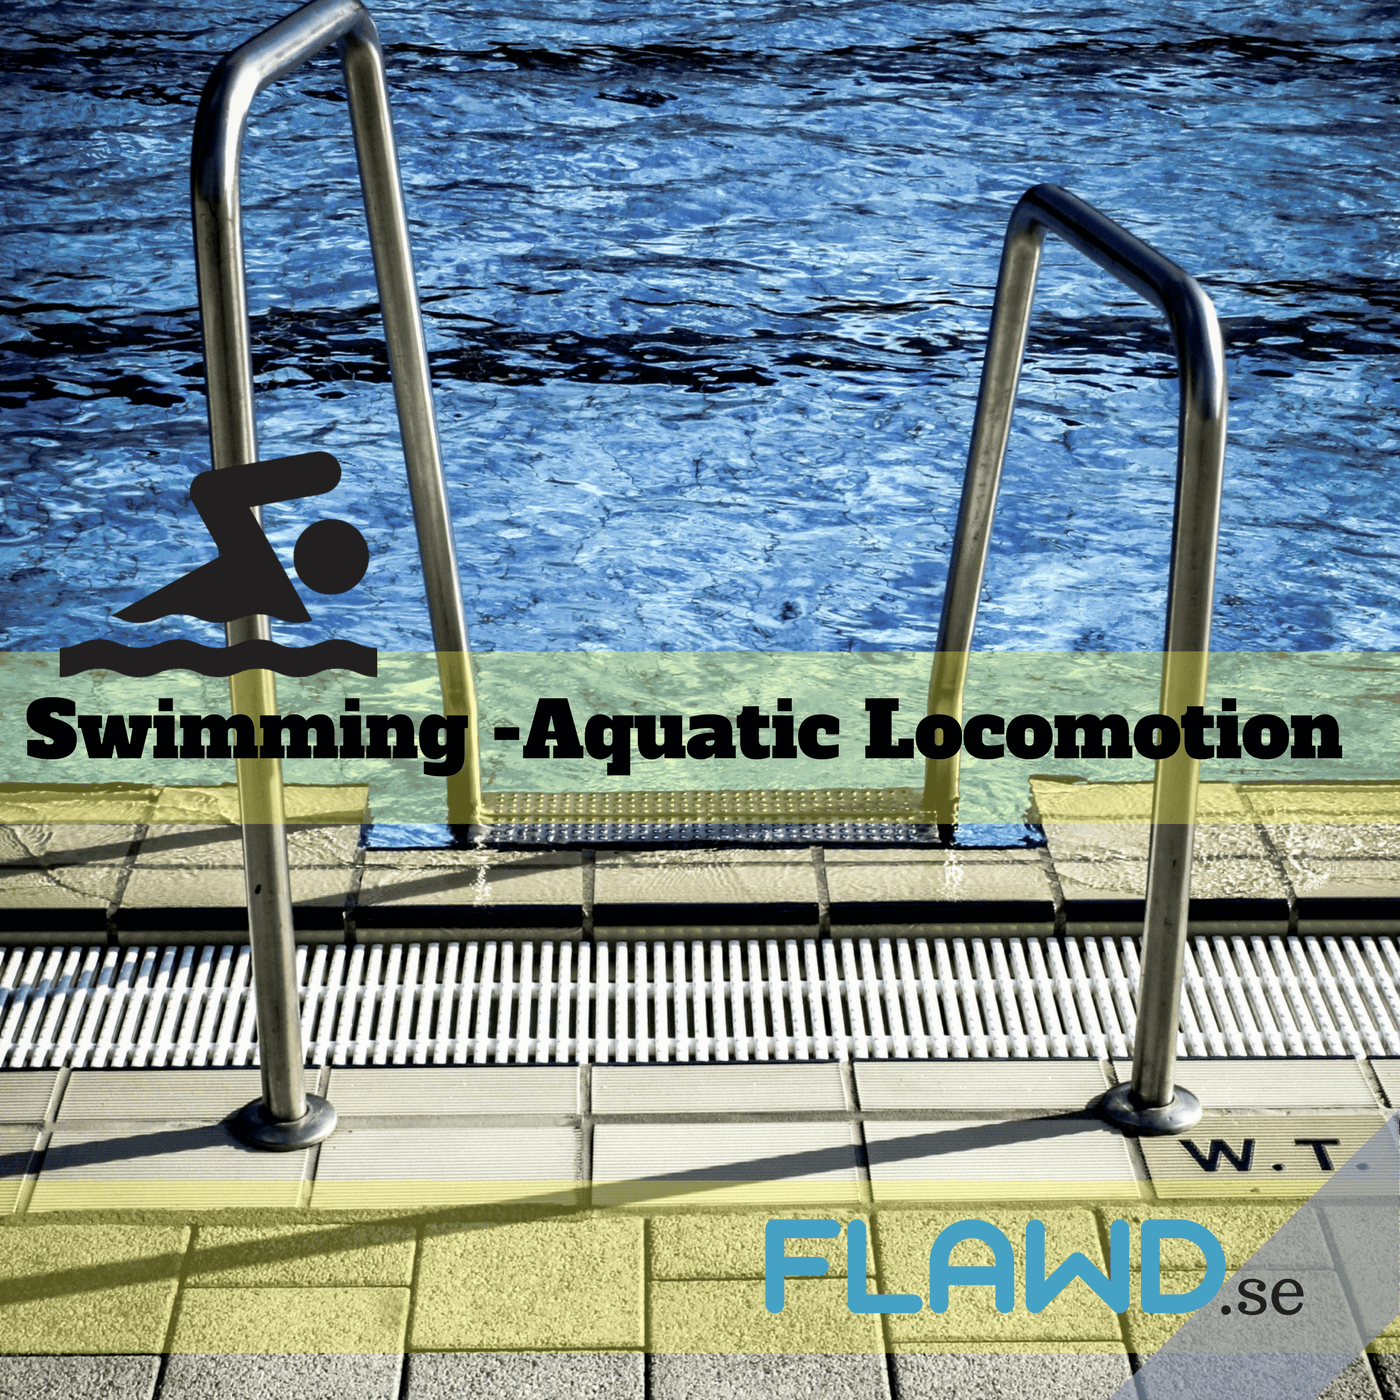 Swimming – Aquatic Locomotion